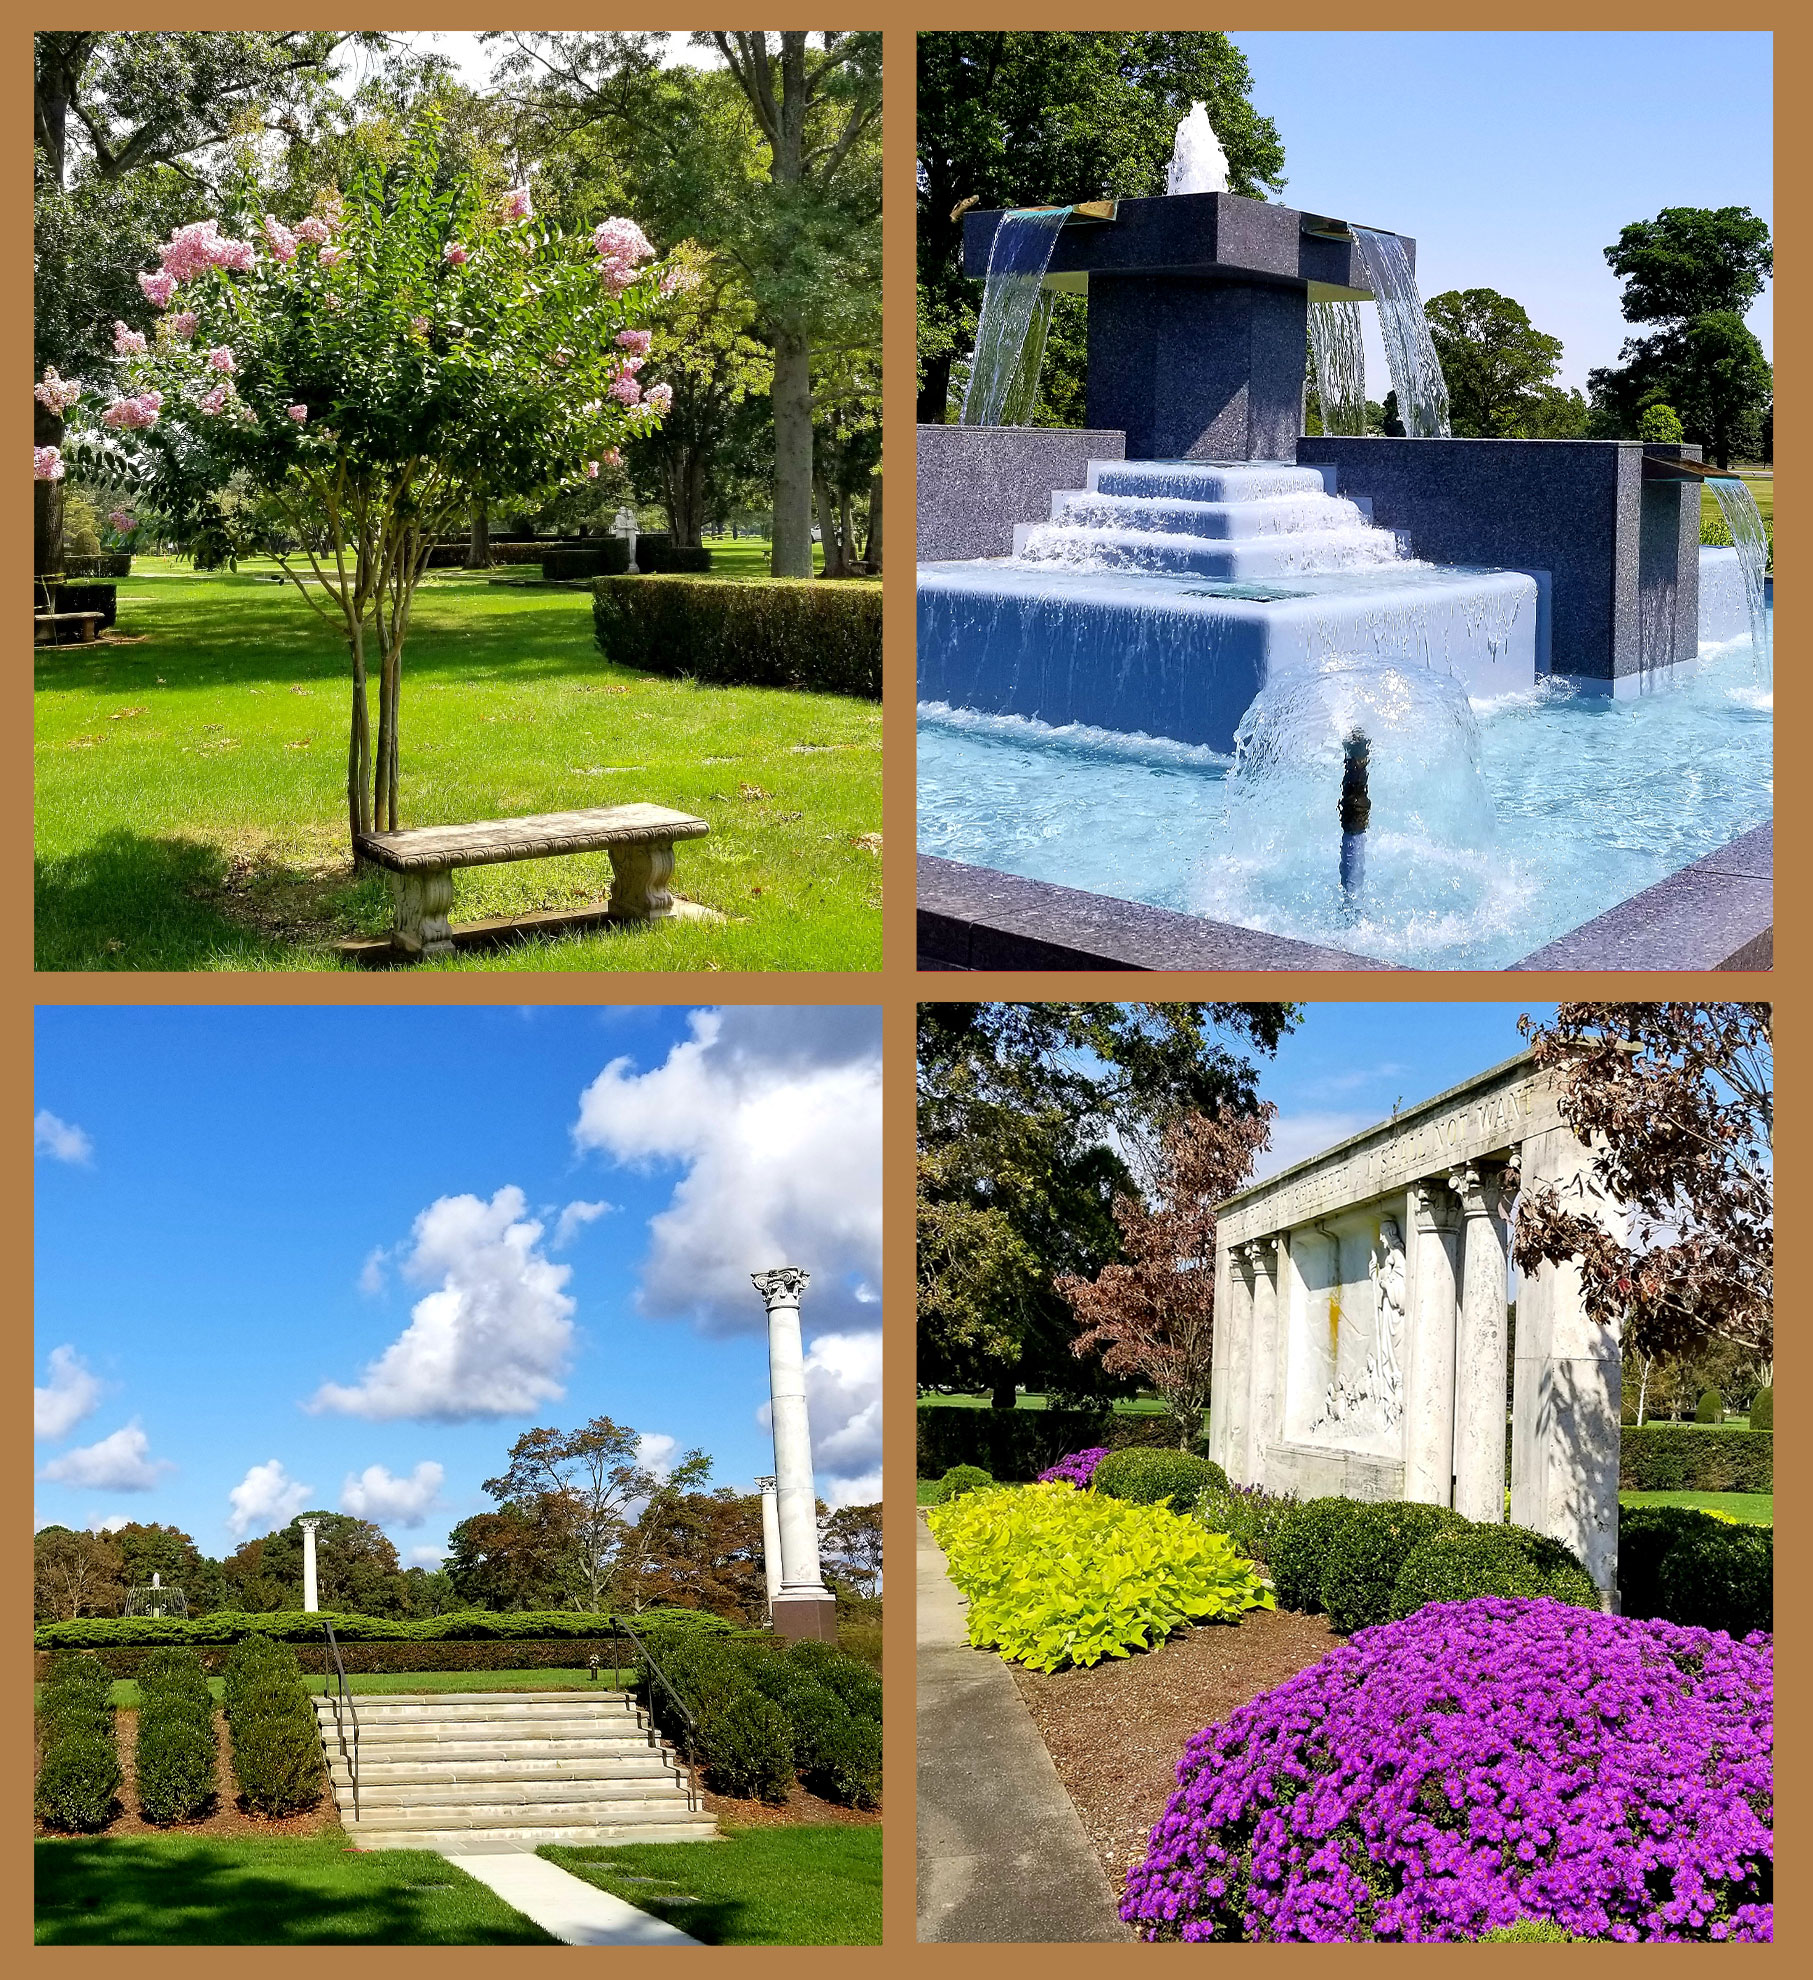 four images of nature fountain and trees